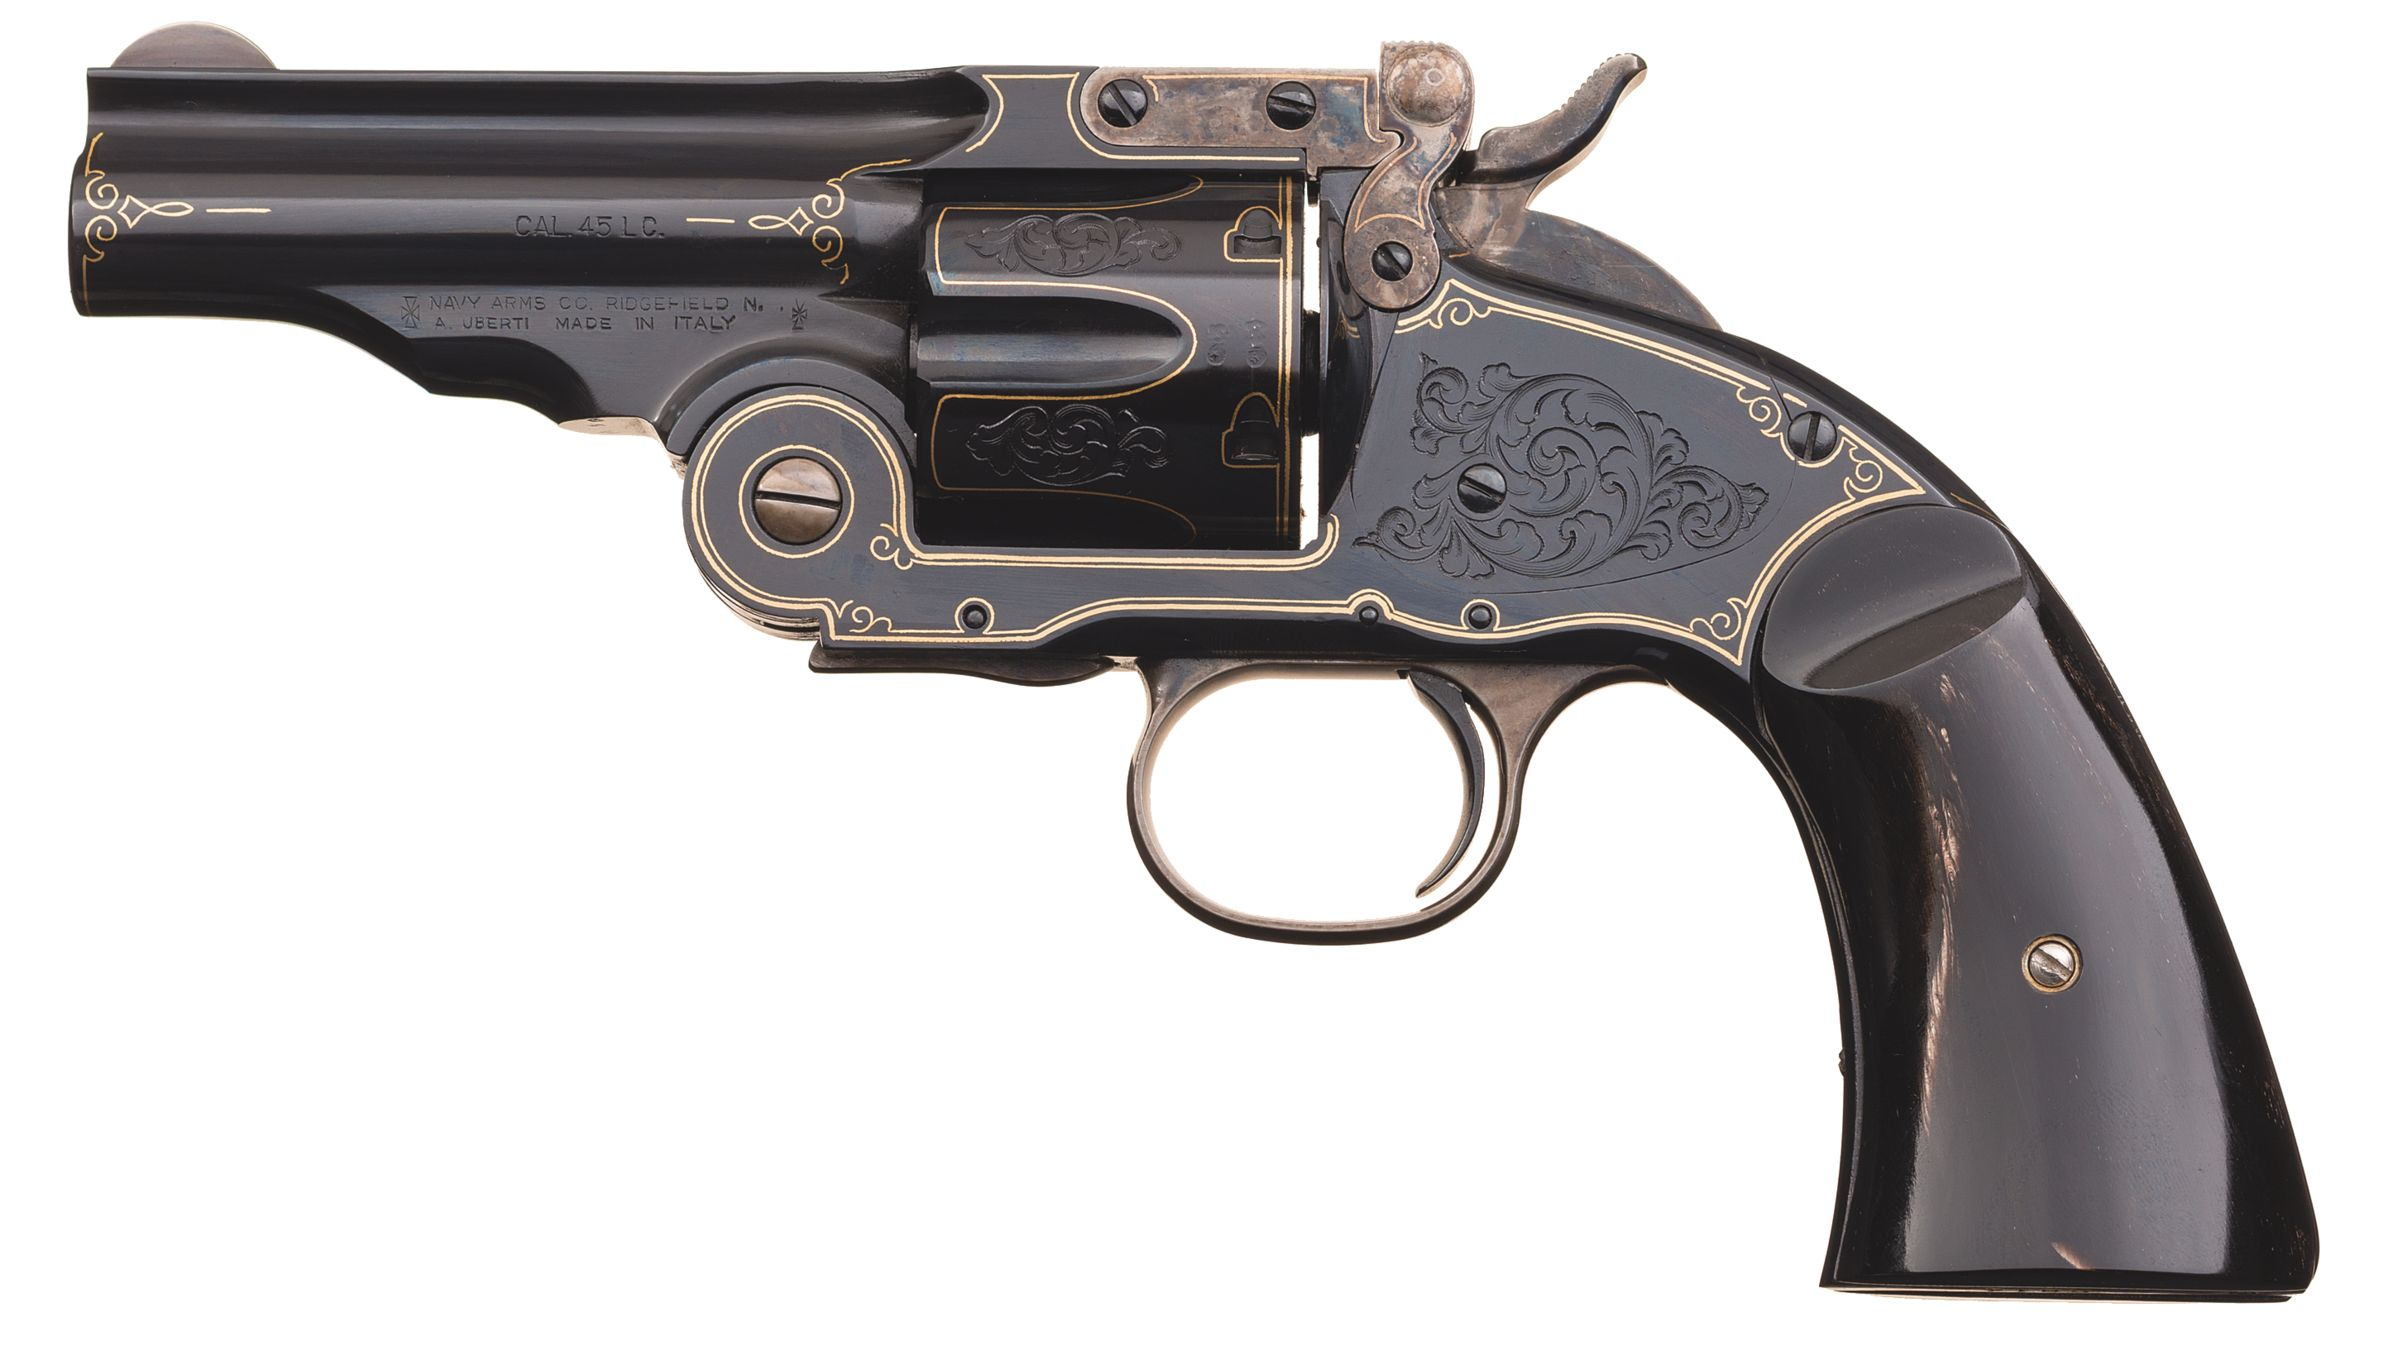 Engraved and Gold Inlaid Uberti/Navy Arms Schofield Revolver